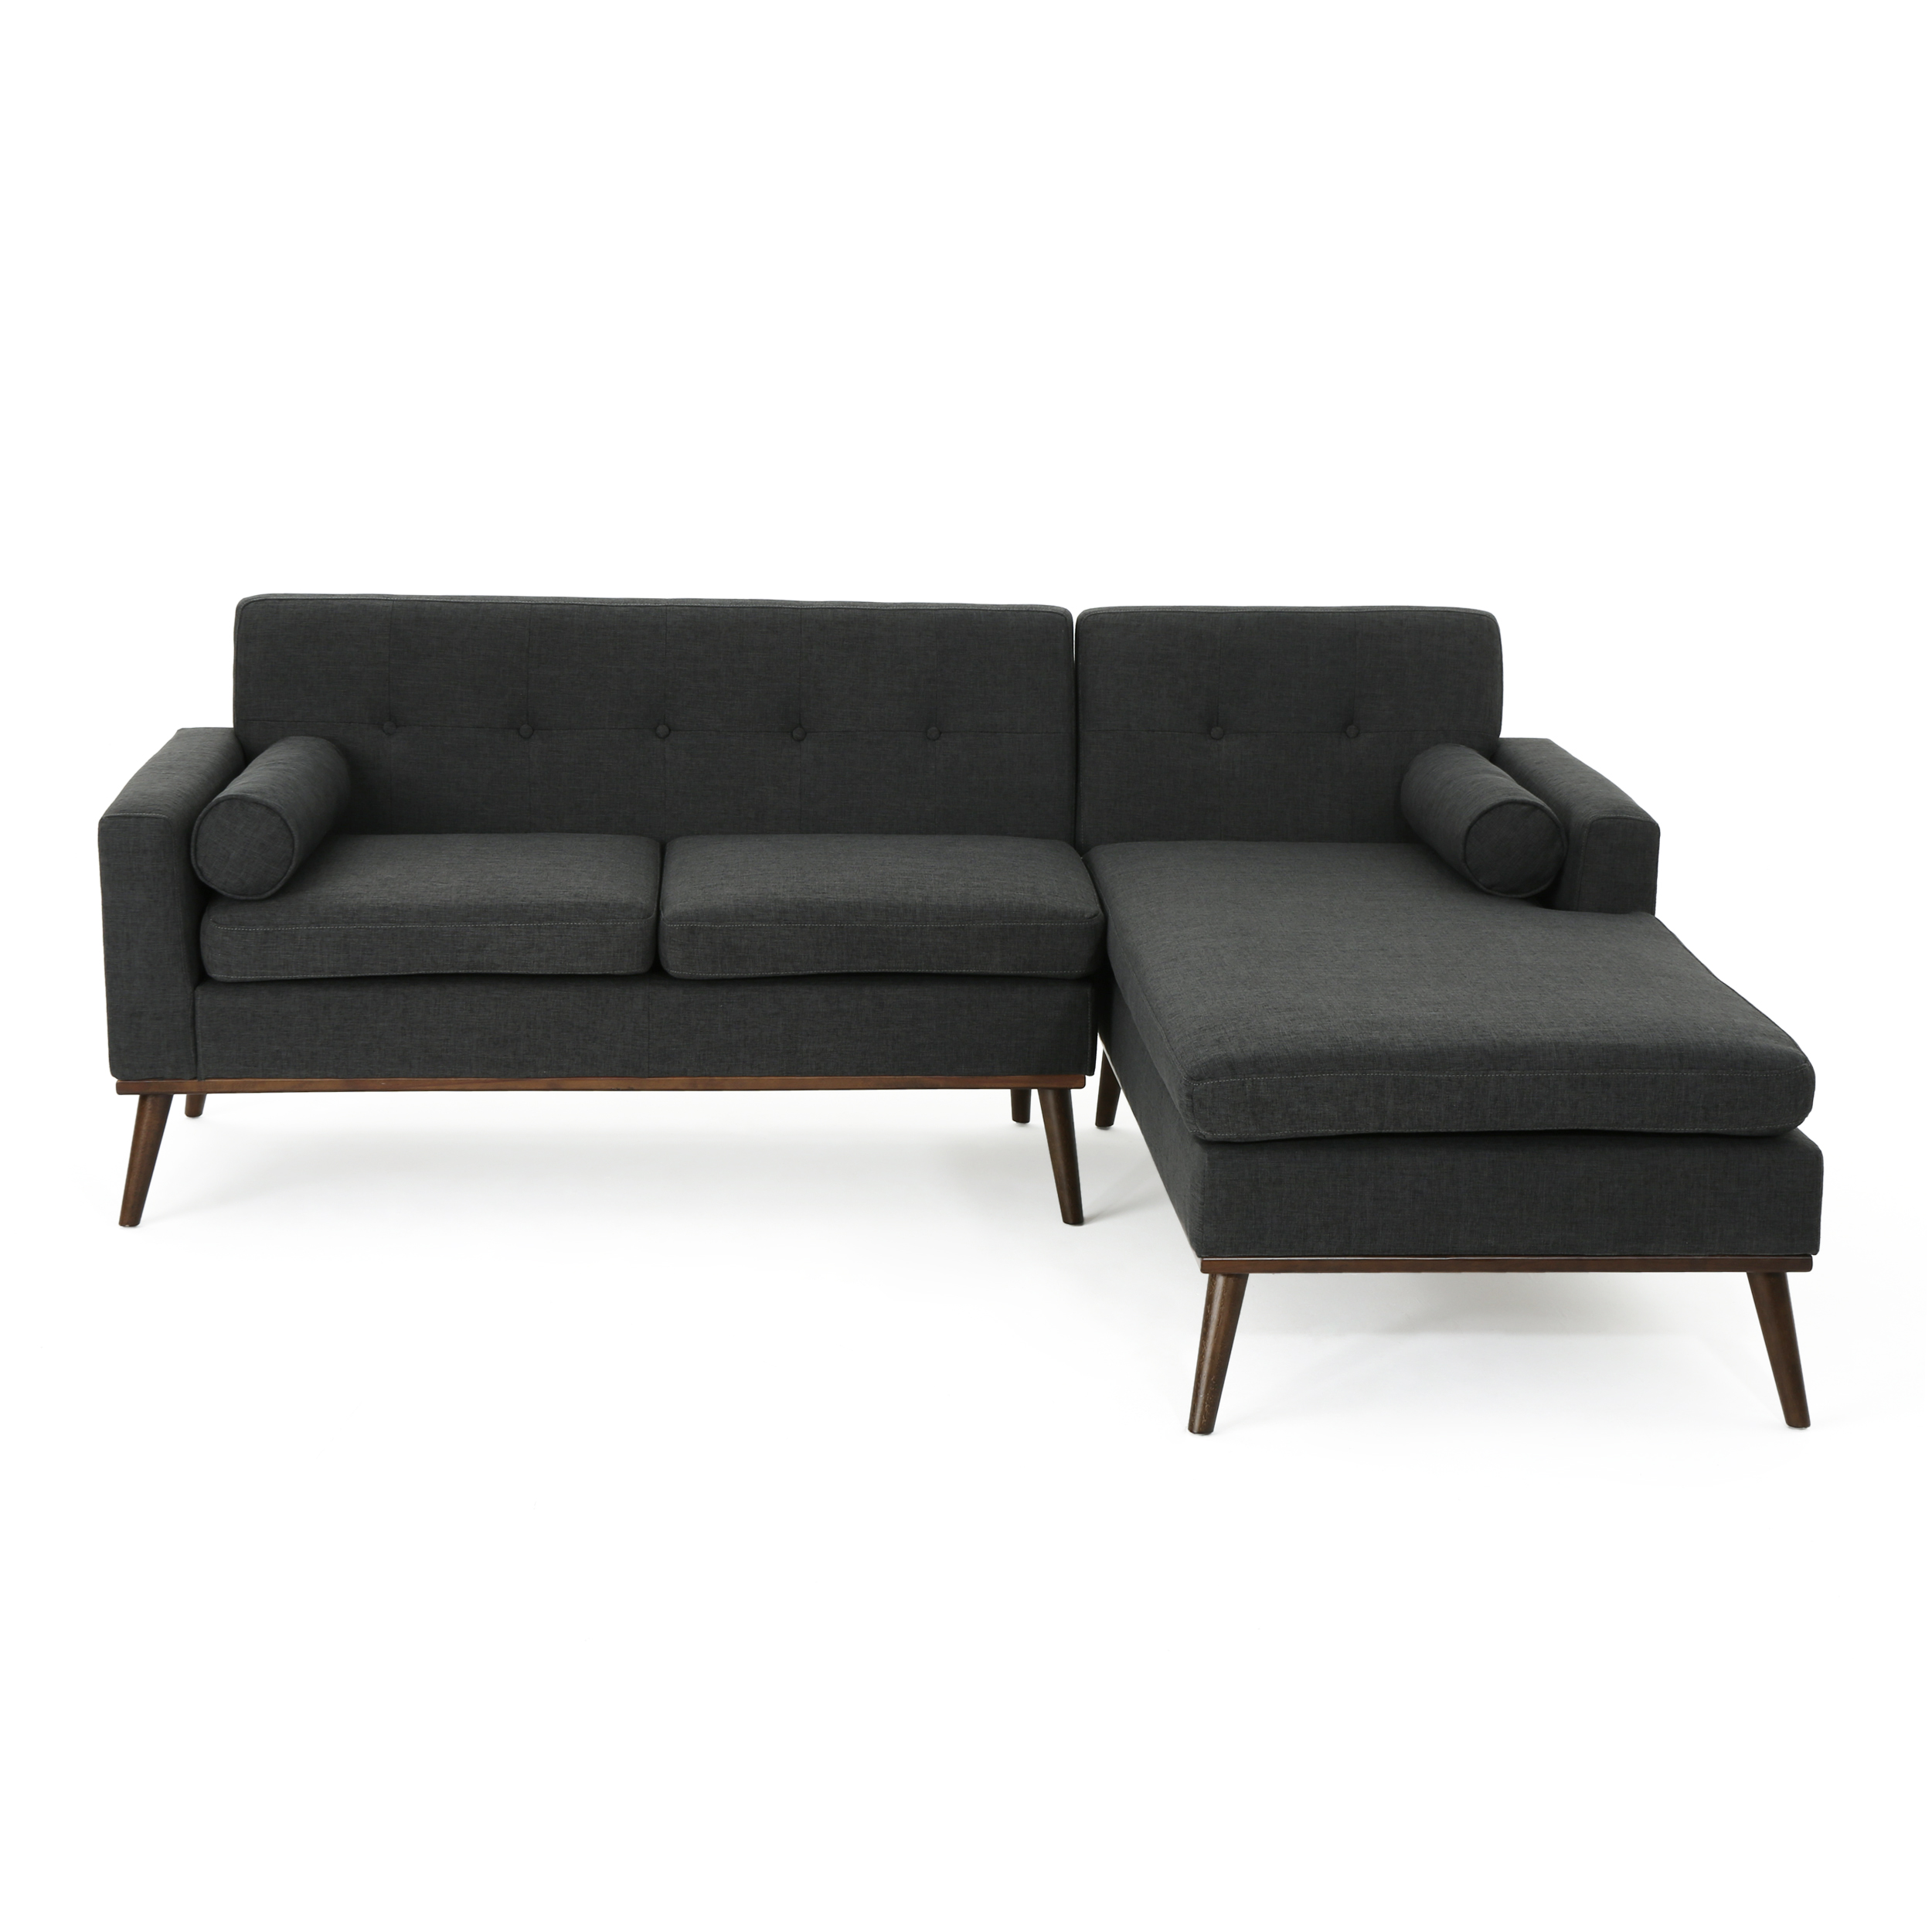 Details About Sophia Mid Century Modern 2 Piece Fabric Sectional Sofa And Lounge Set